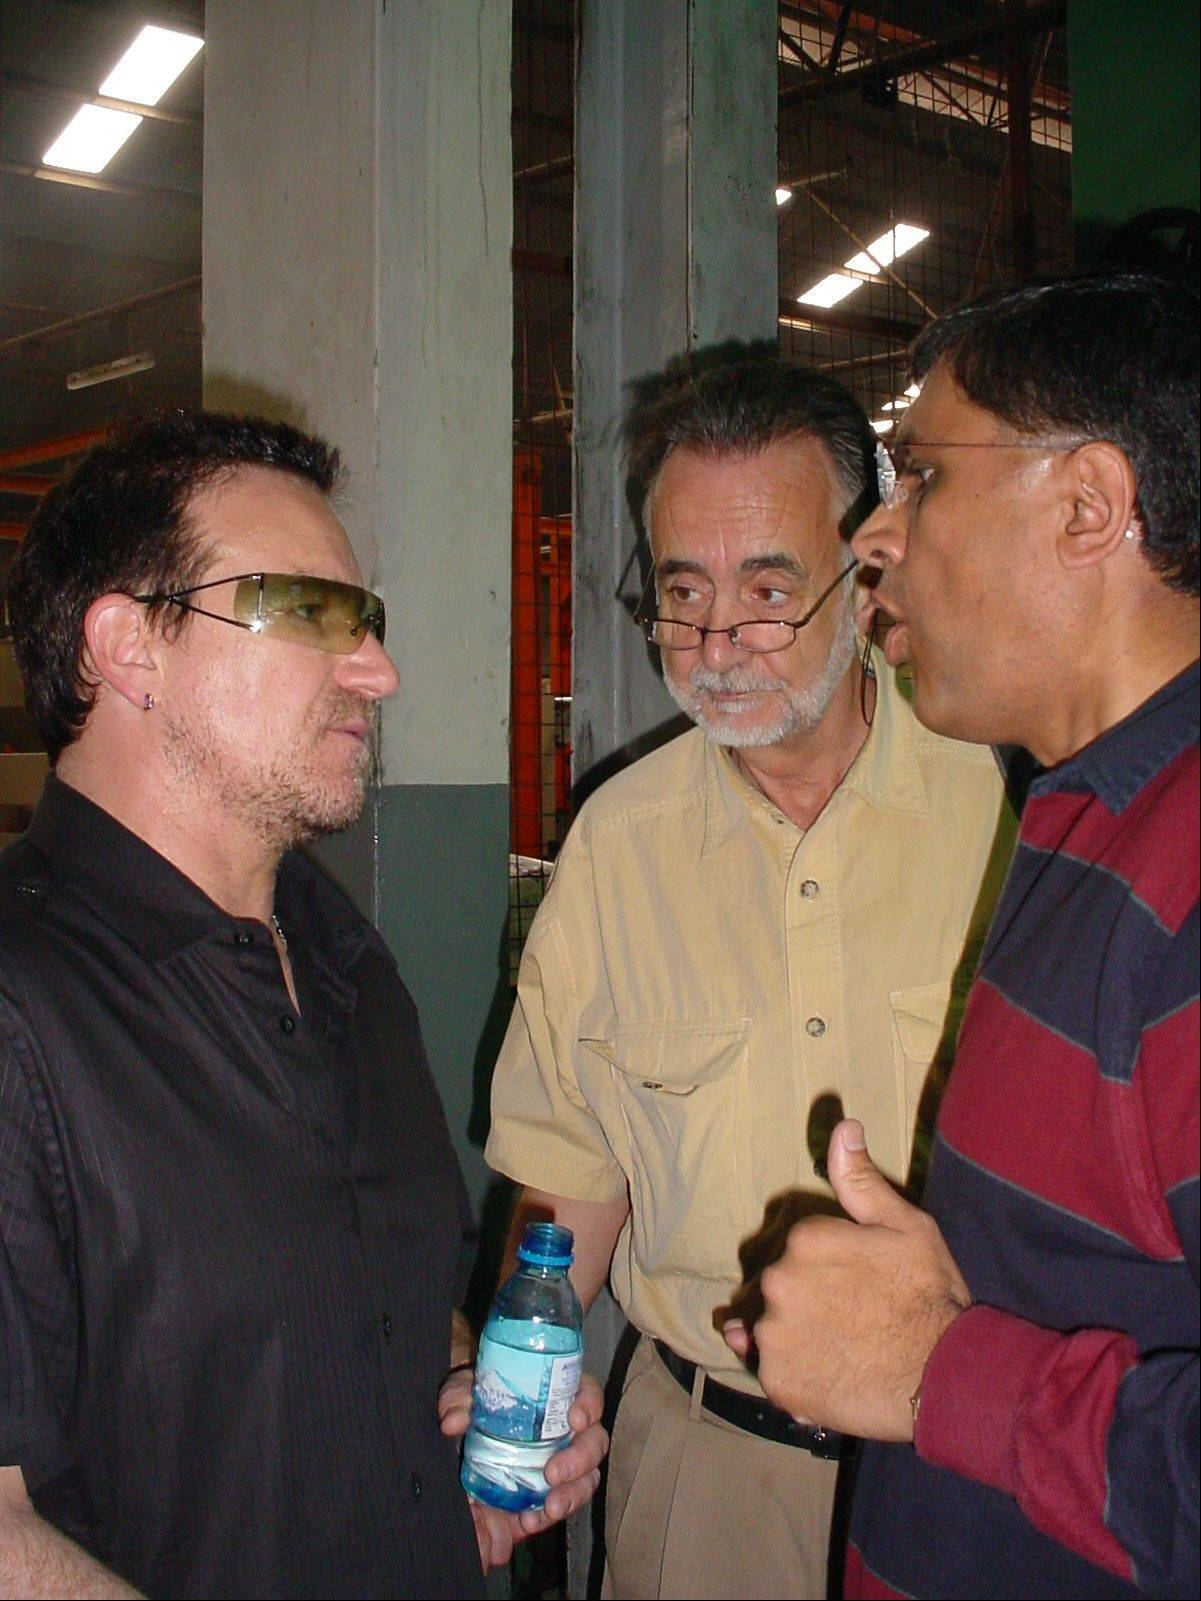 U2's lead singer, Bono, left, talks with CEO of A to Z textiles Mills, Anuj Shah, right and Richard Faechemin, Executive Director of The Global Fund, in Arusha, Tanzania on Saturday May, 20, 2006. Bono visited the factory which is the only manufacturer in Africa to make insectile treated nets to fight malaria. The 46-year-old Irish rocker, who has long complained that Africa's problems get little attention in the news, is on a 10-day tour of Africa that's already taken him to South Africa, Rwanda and Lesotho. He also planned stops in Nigeria, Mali and Ghana.